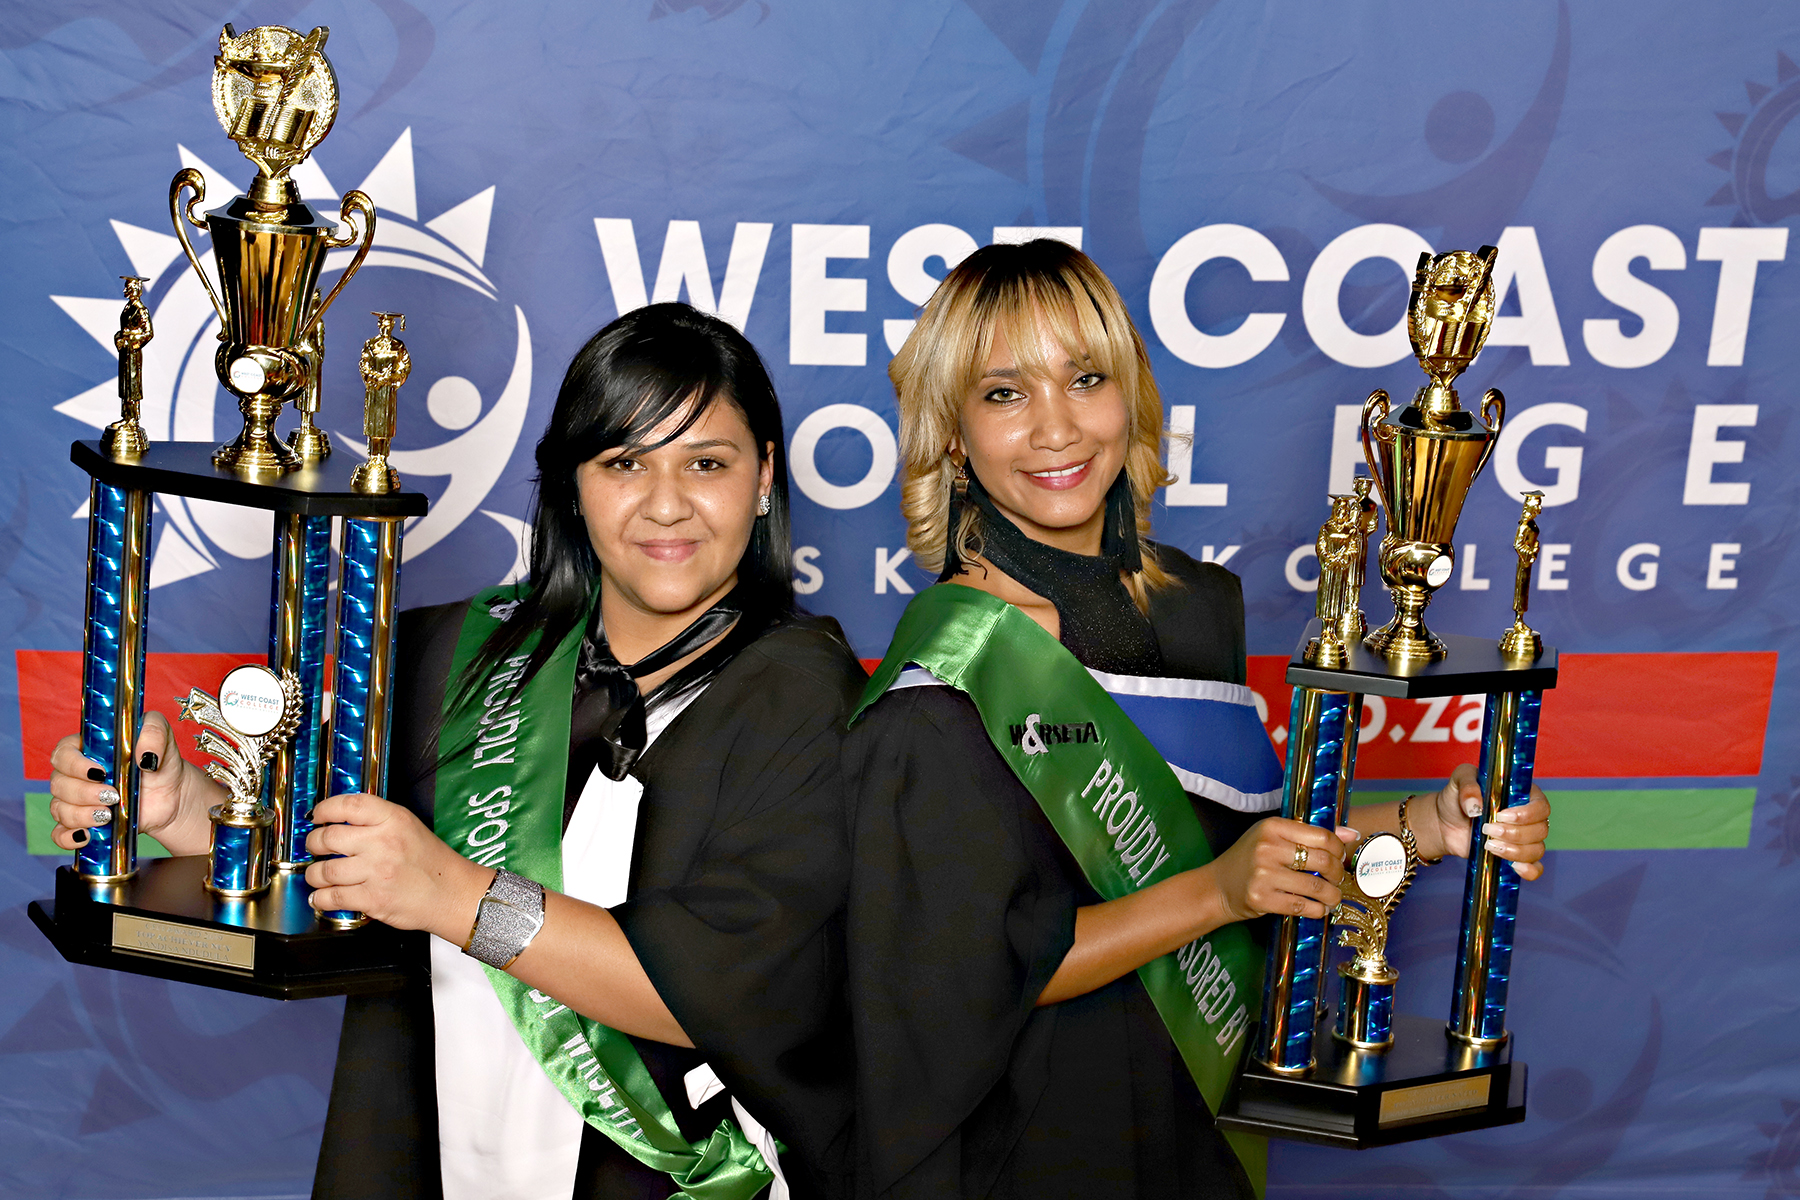 West Coast College Celebrates students' academic success